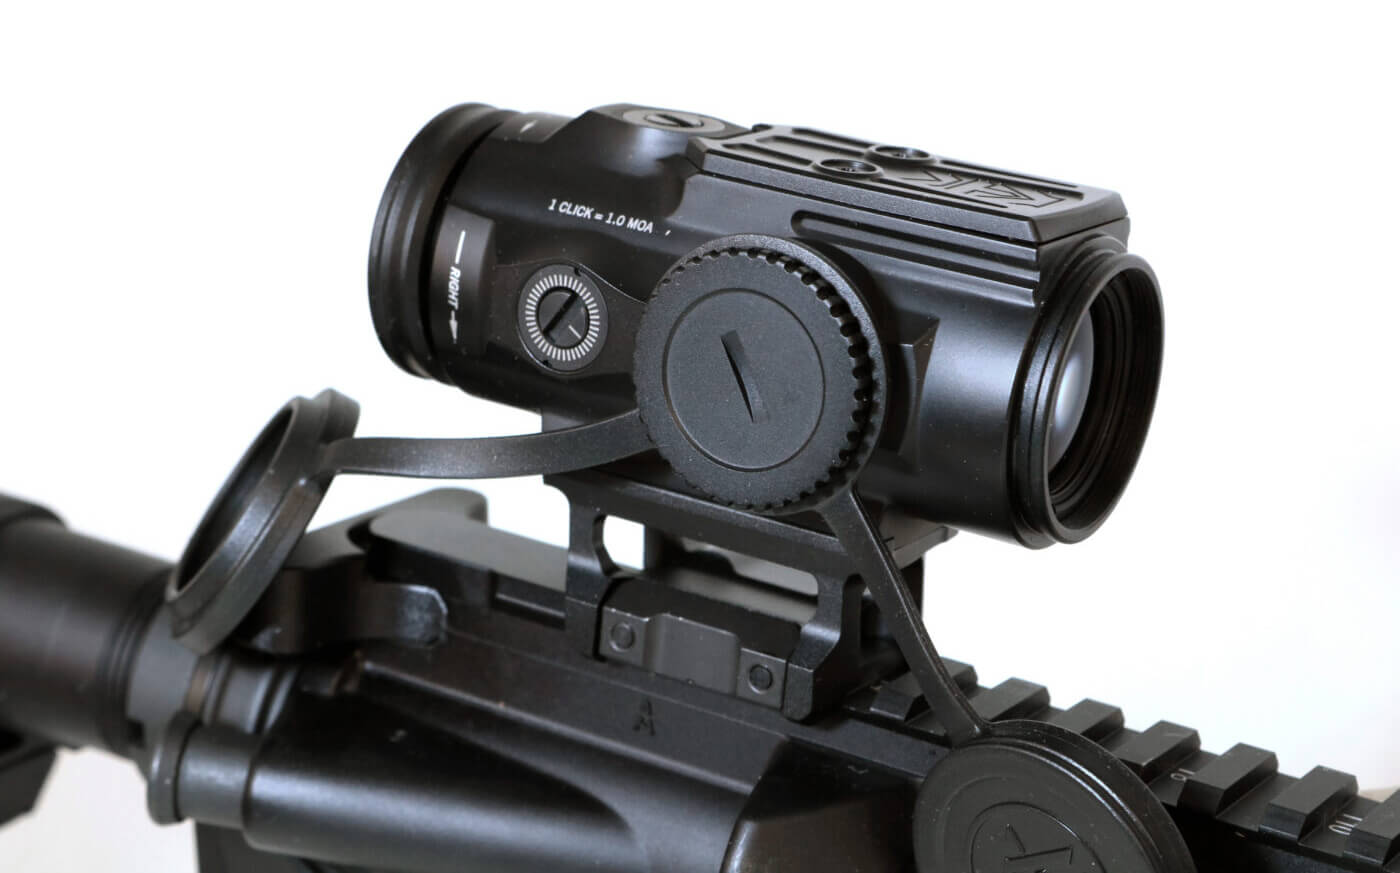 Vortex Spitfire HD Gen II scope